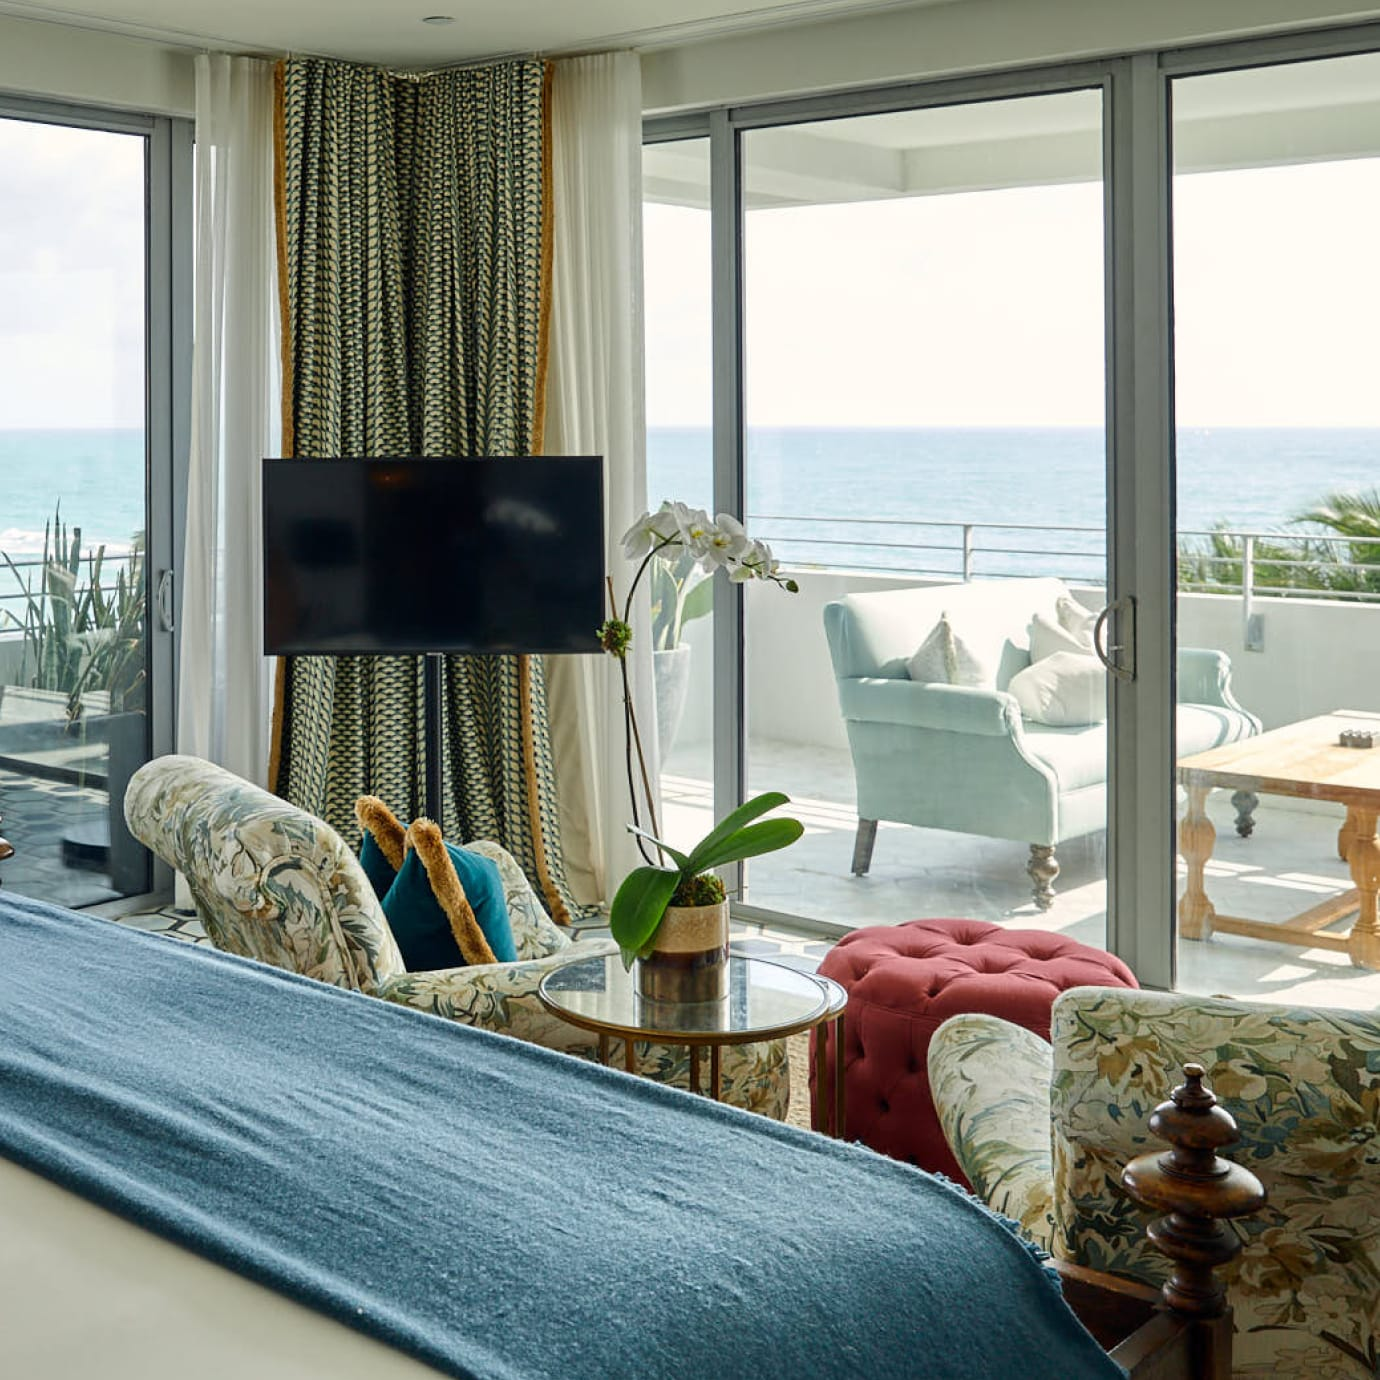 A corner bedroom with views over the sea and a balcony with seating.